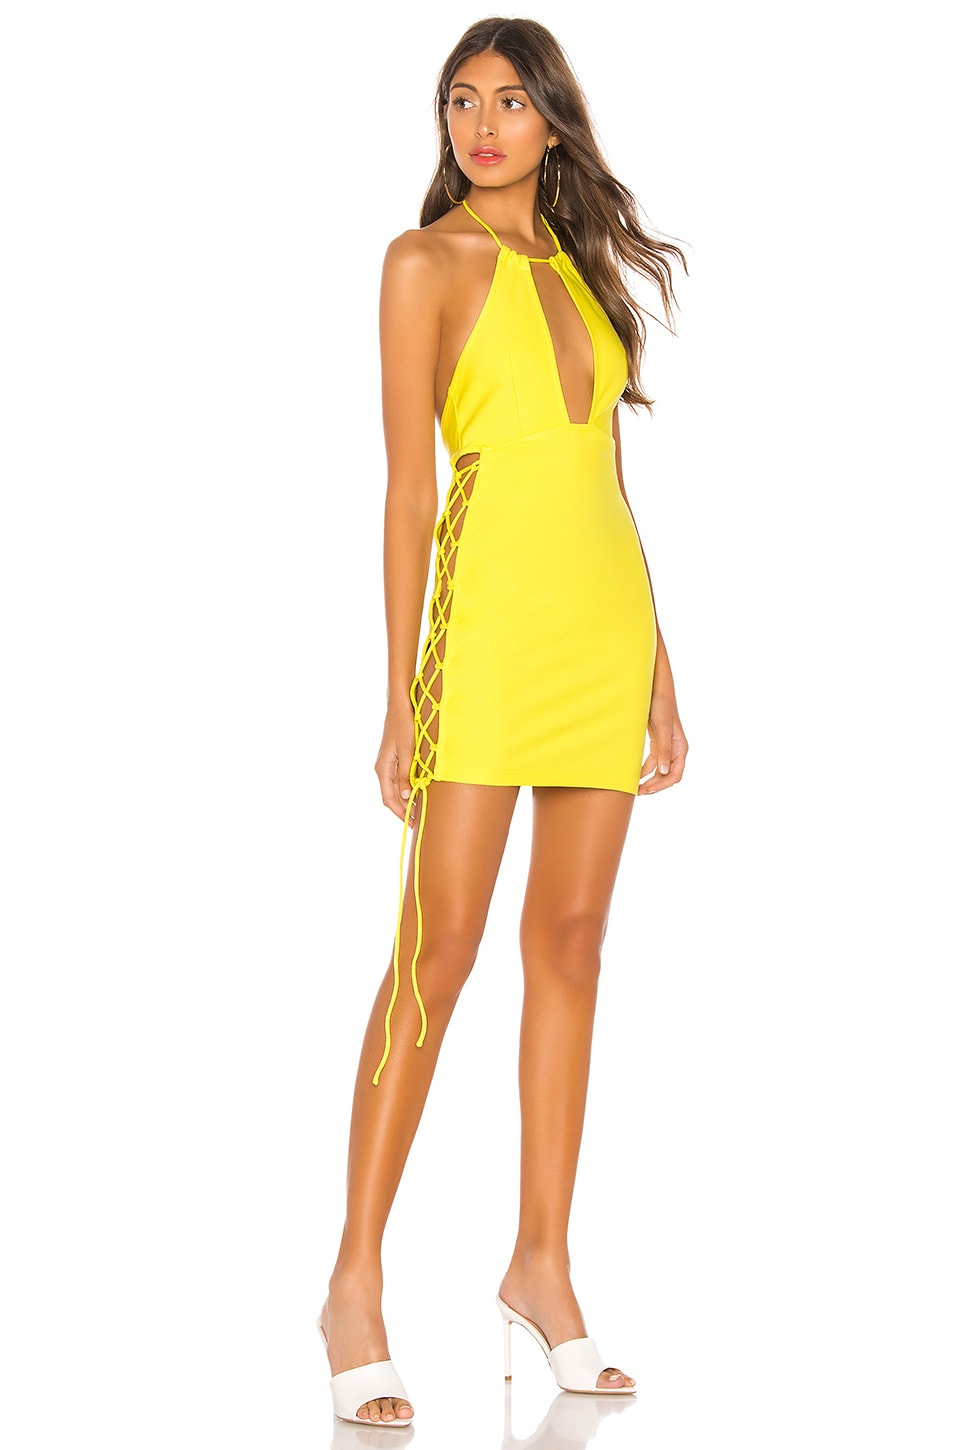 h:ours Arcadia Mini Dress in Yellow Citrus